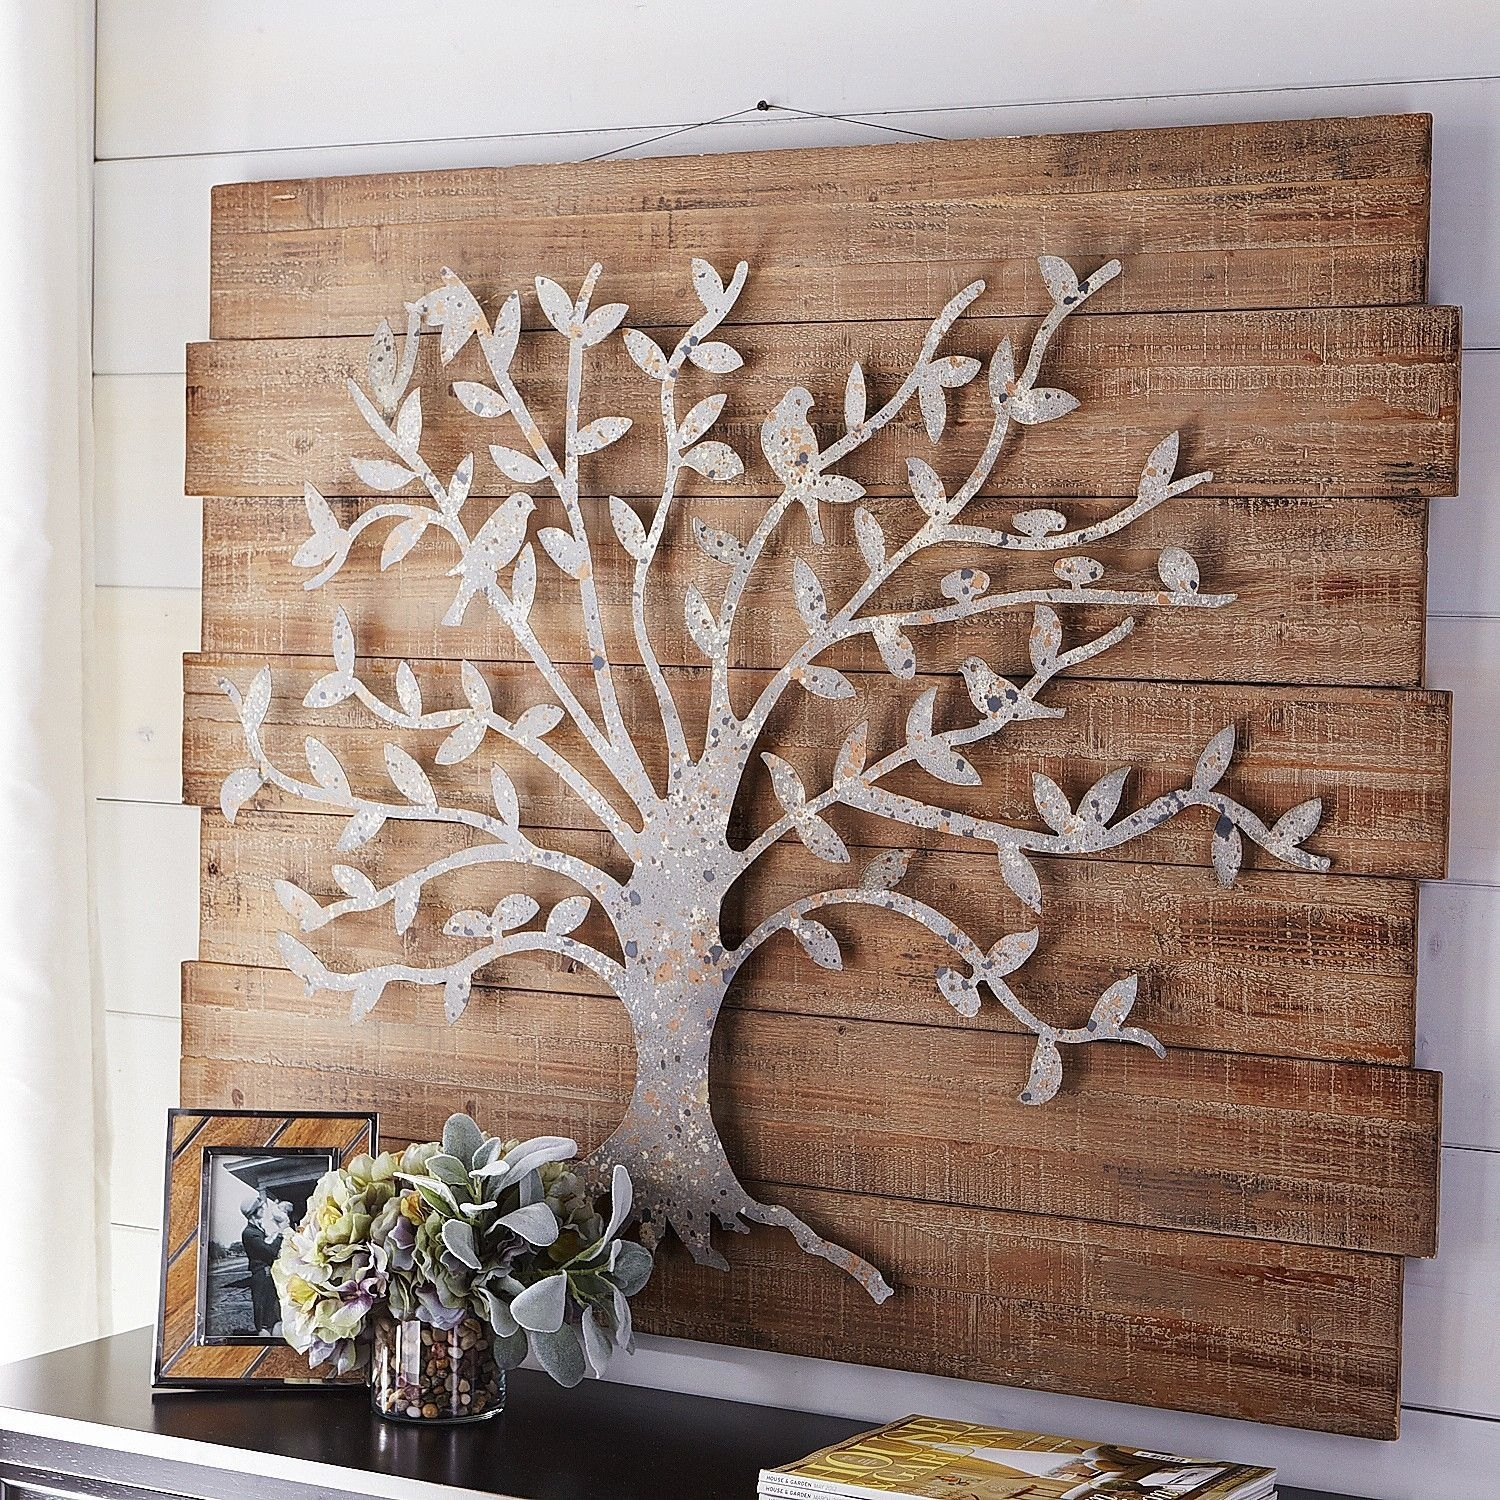 Timeless Tree Wall Decor | Pier 1 Imports … | Metal Work | Pinte… For Most Popular Tree Wall Art (View 2 of 15)